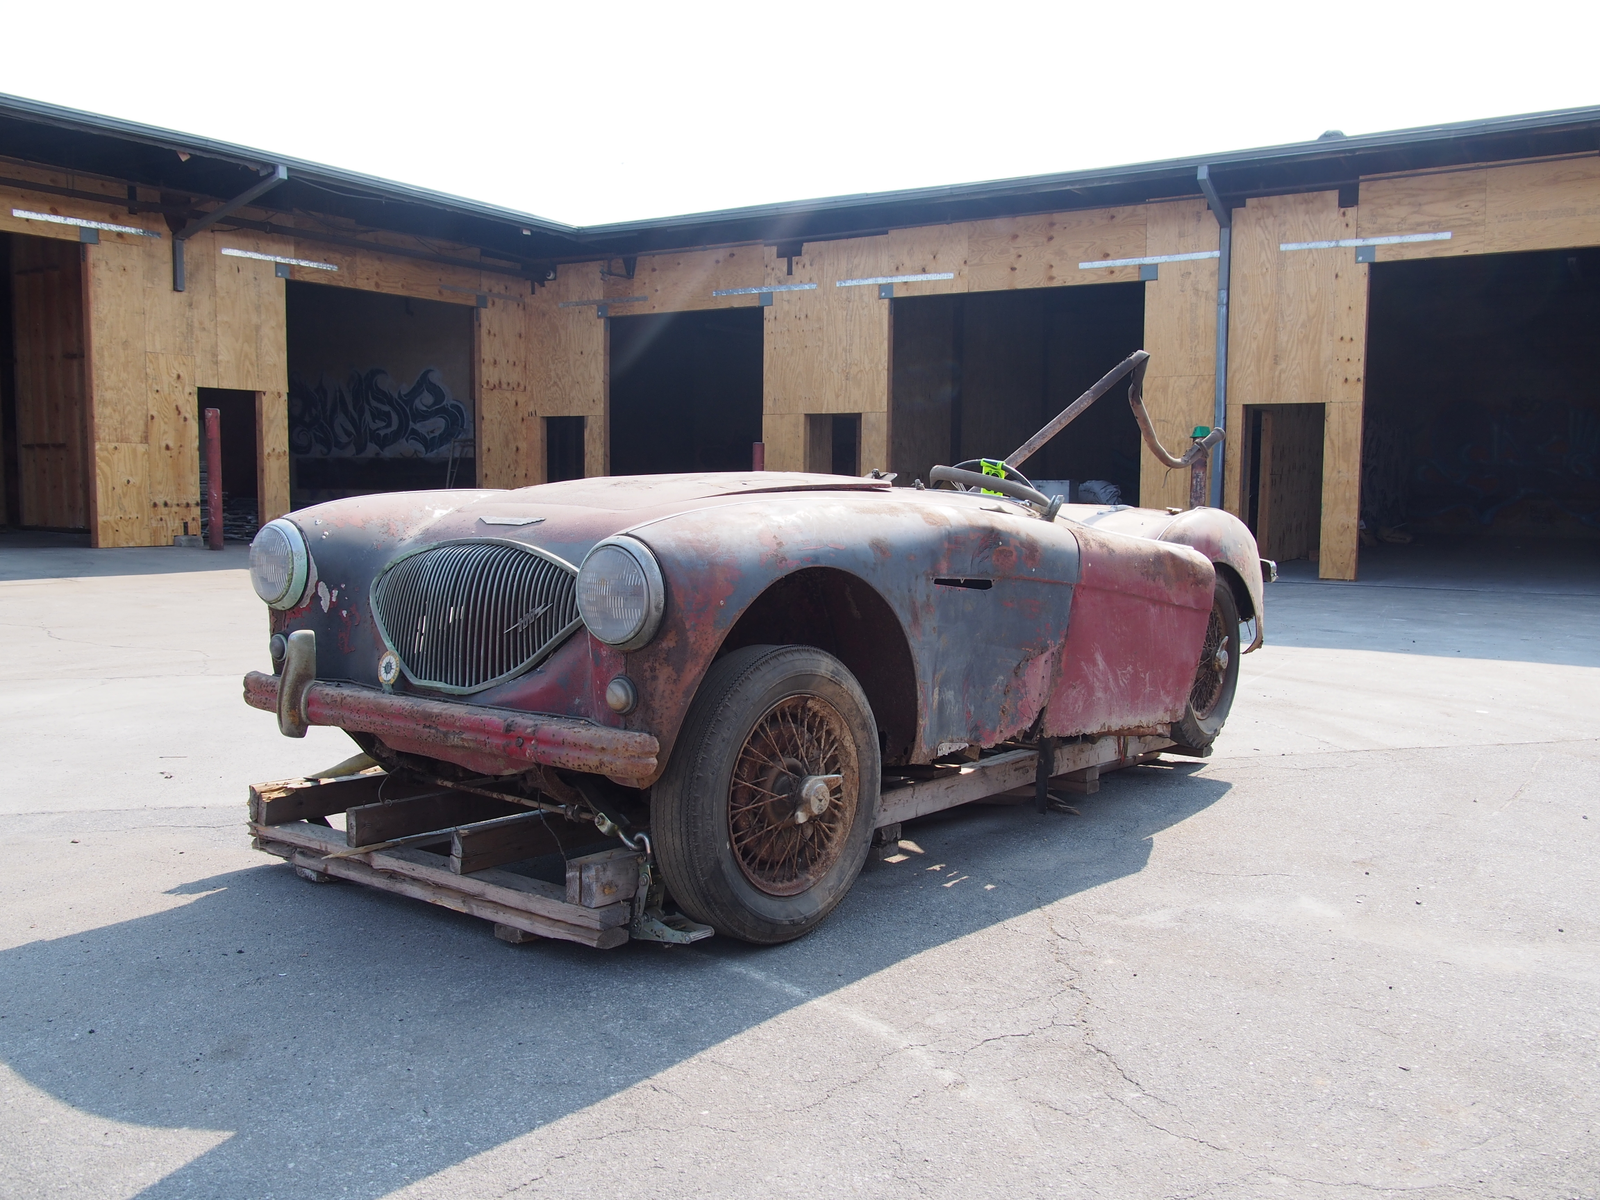 This big Healey is now a beautiful sculpture.